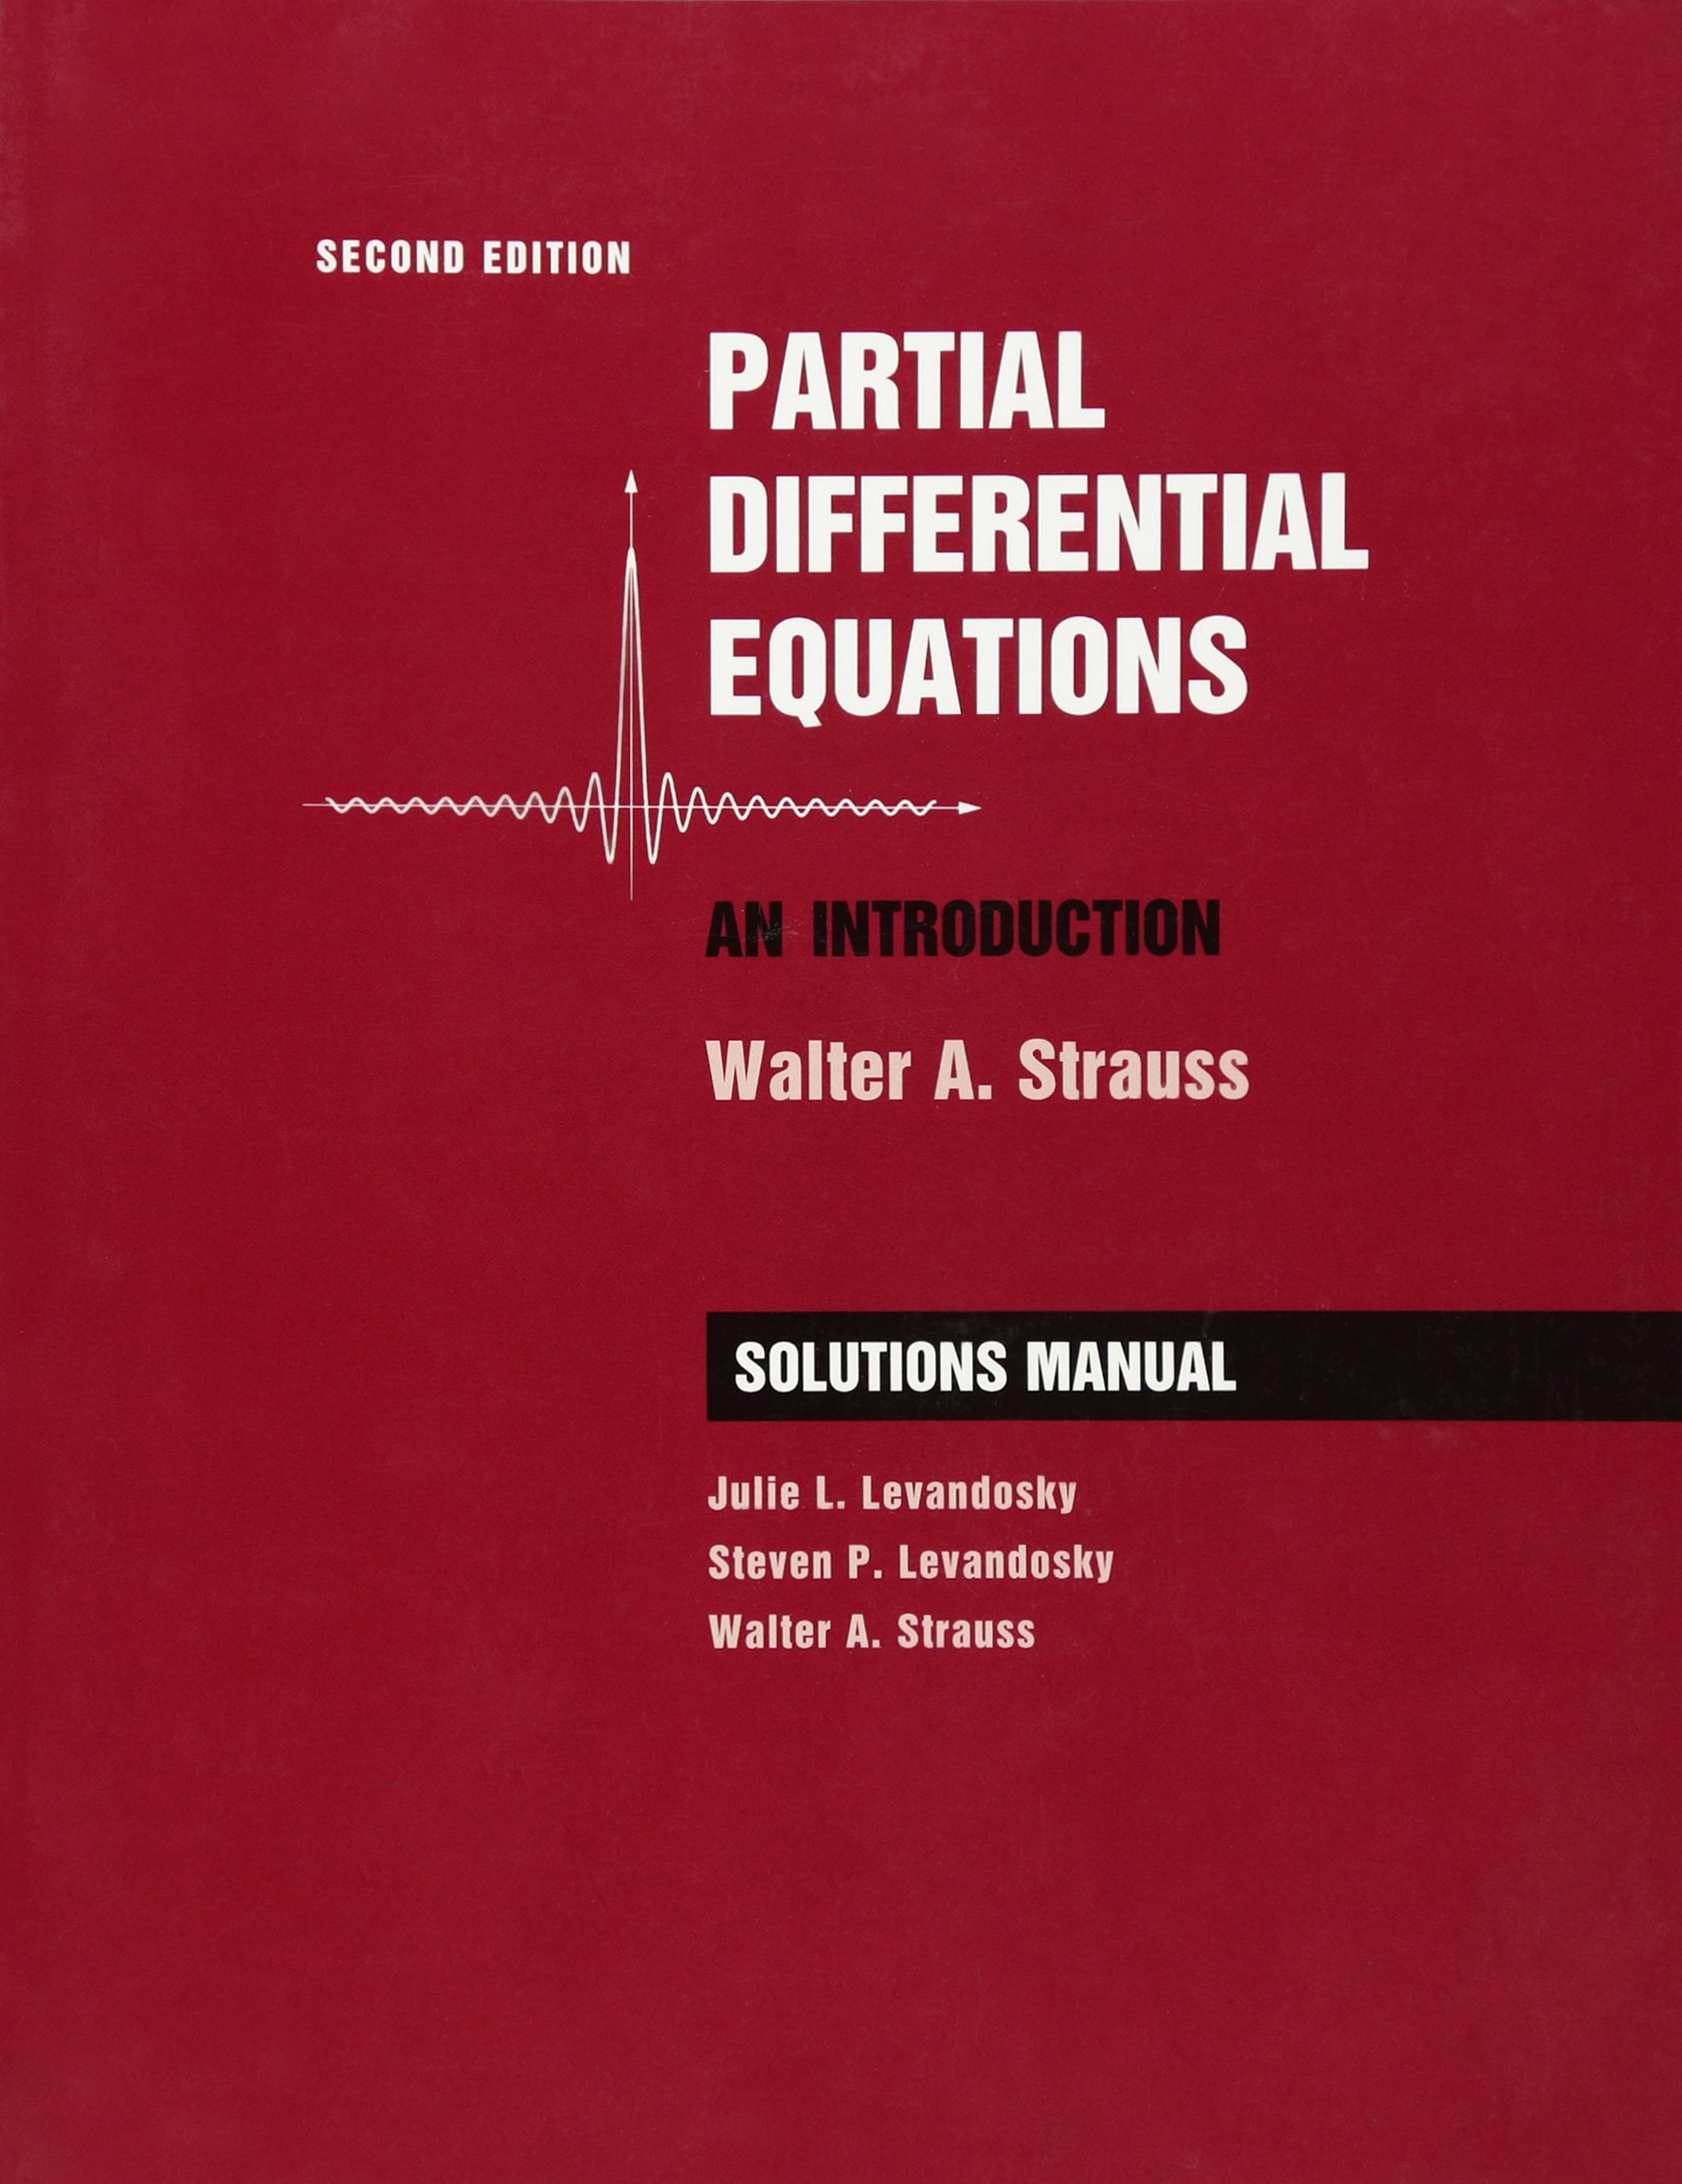 Buy Student Solutions Manual to accompany Partial Differential Equations:  An Introduction, 2e Book Online at Low Prices in India | Student Solutions  Manual ...